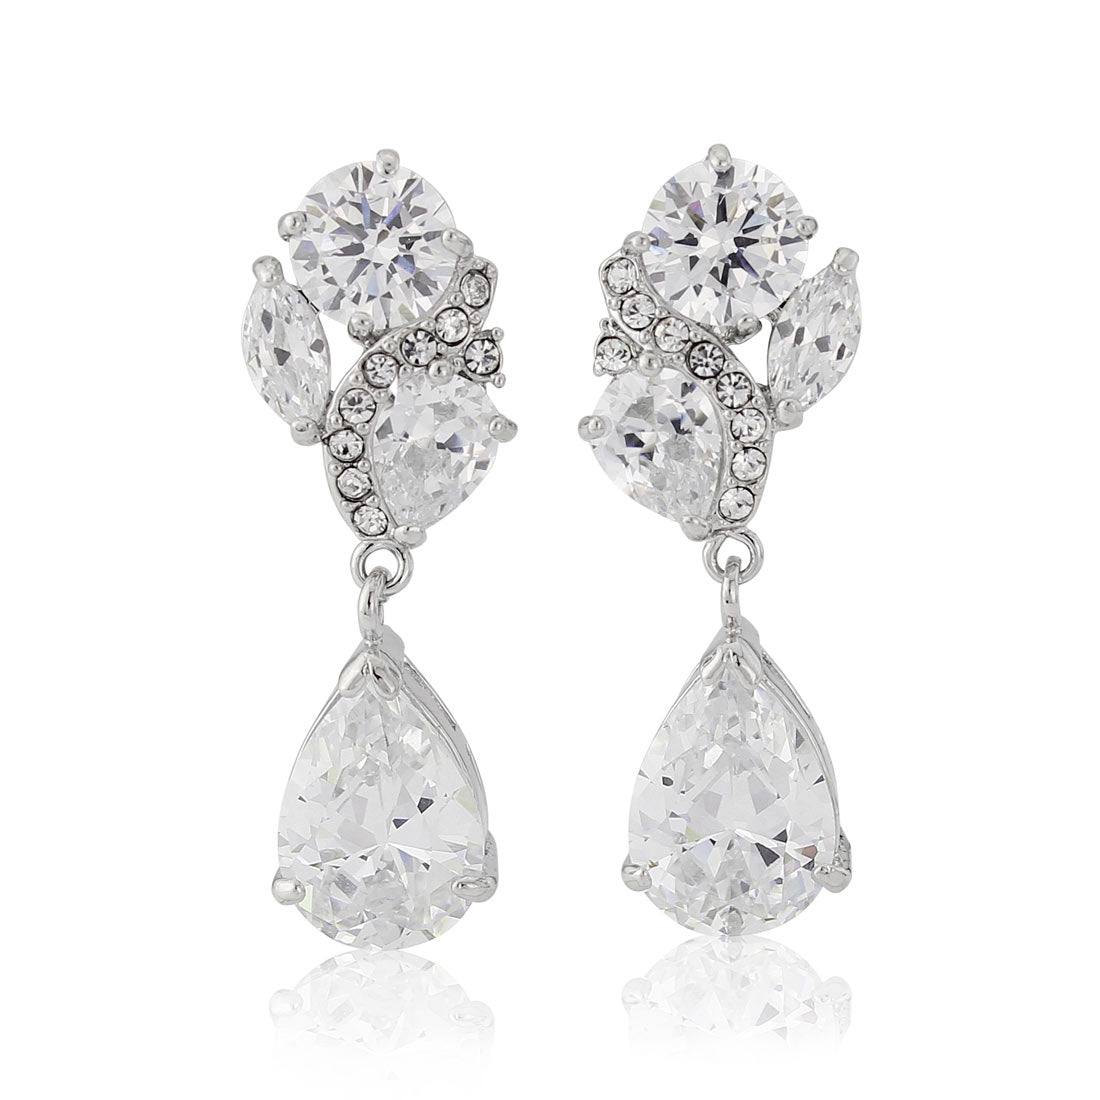 Starlet S Extravagance Clip On Earrings